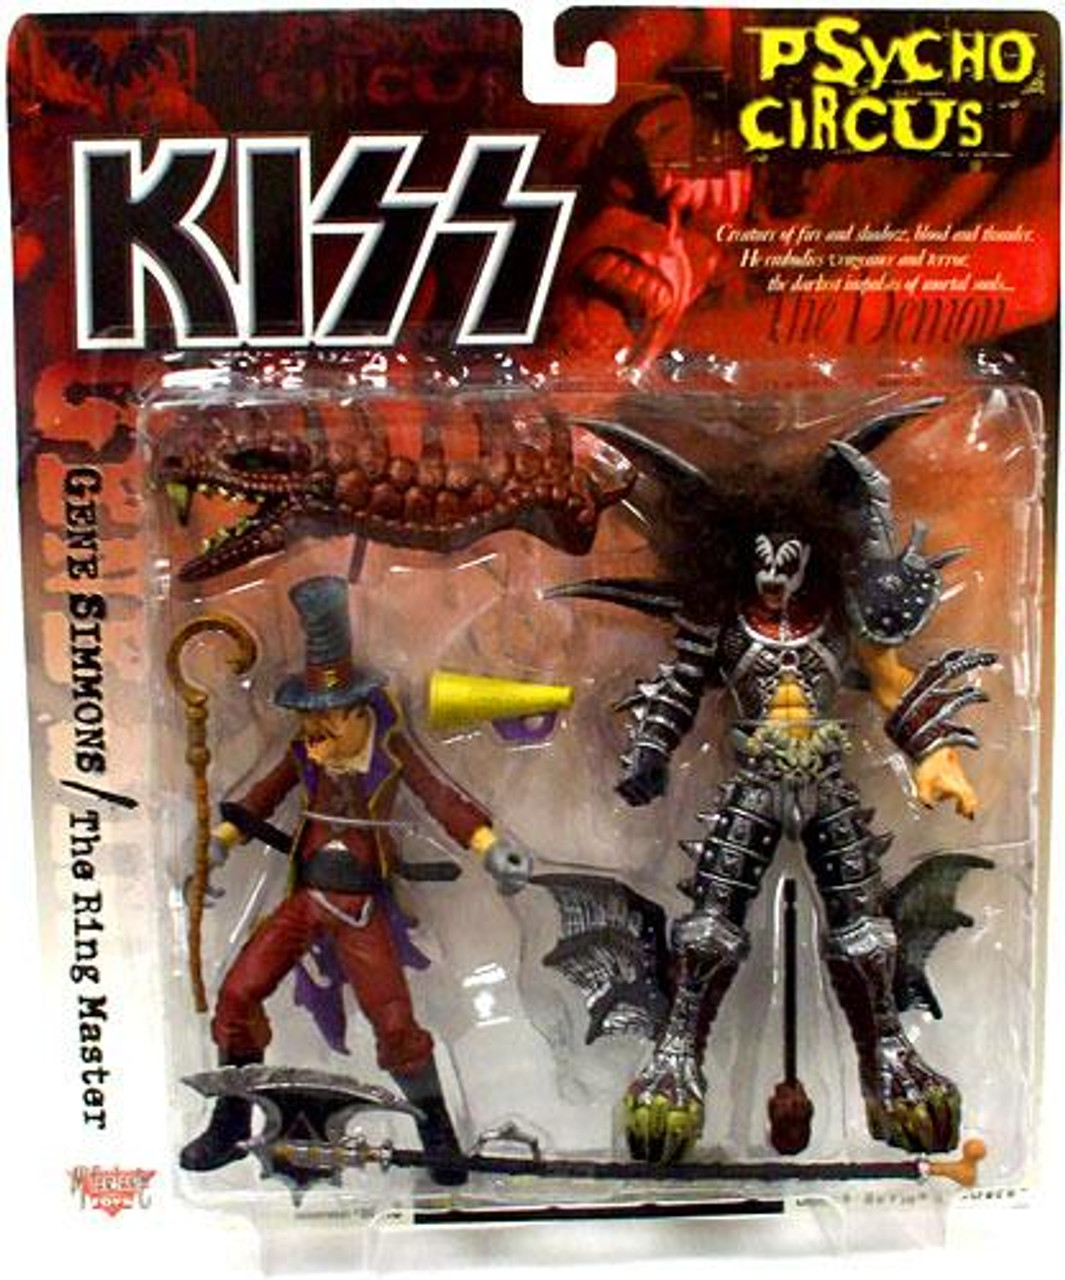 McFarlane Toys KISS Psycho Circus Gene Simmons & The Ring Master Action Figure 2-Pack